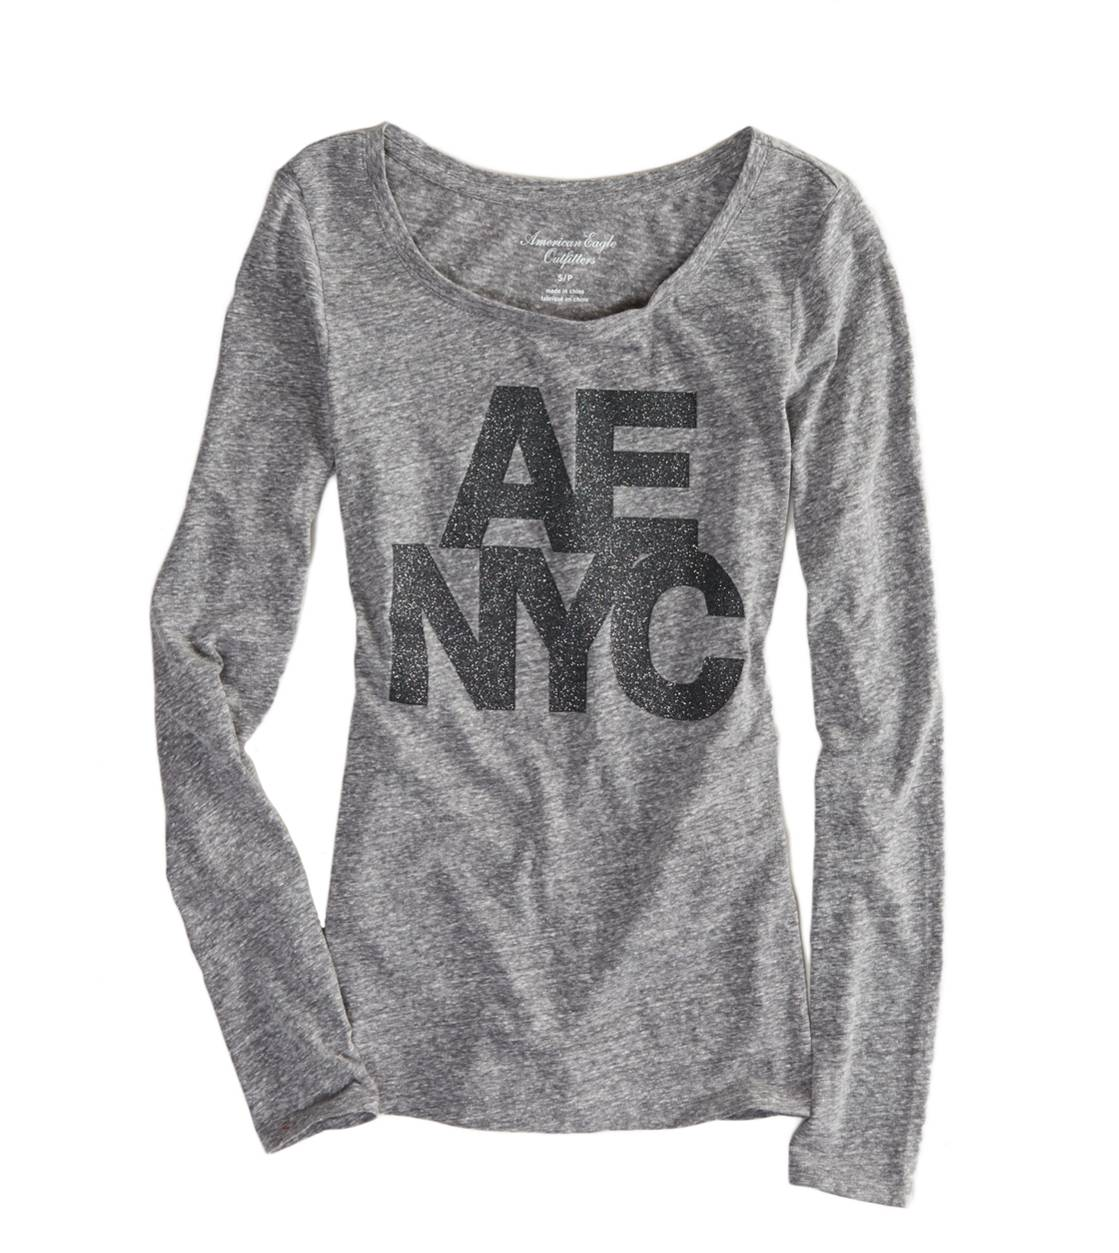 Grey AE New York Graphic T-Shirt